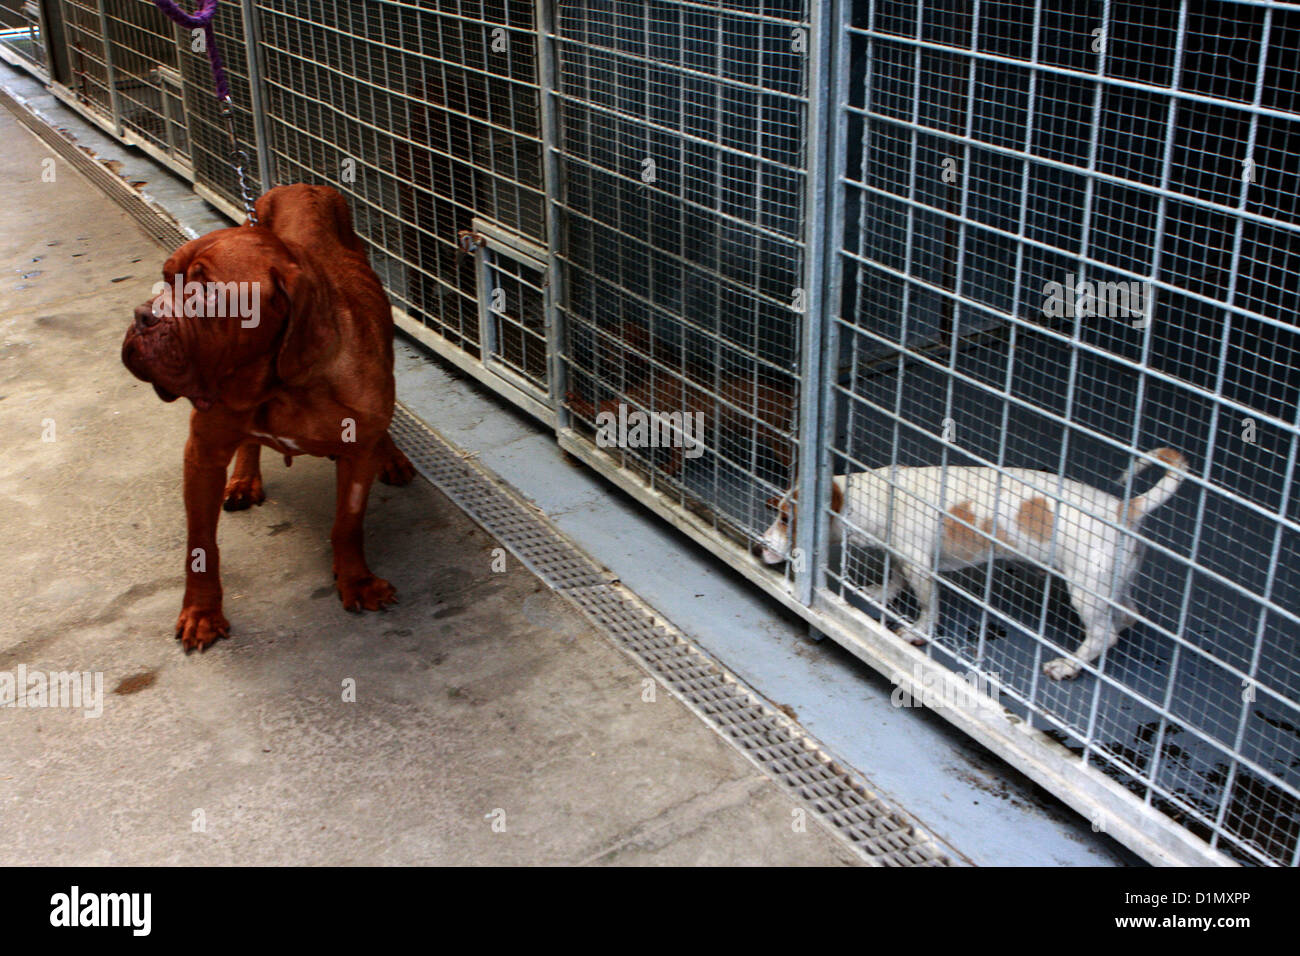 shelter for dogs Czech Republic - Stock Image